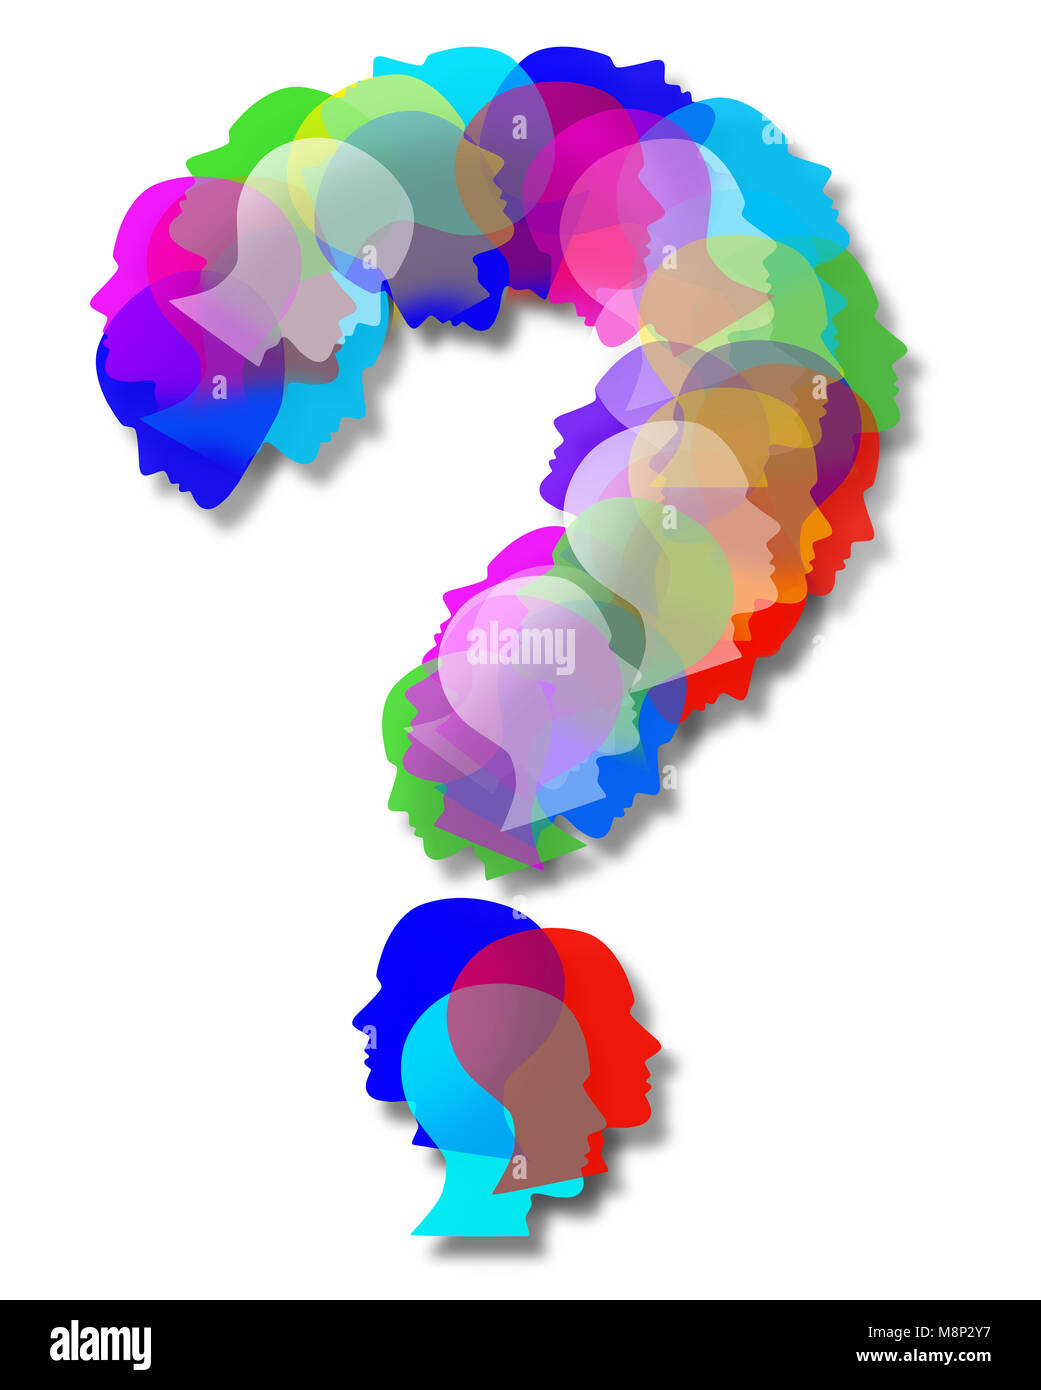 People questions as an abstract population shaped as a question mark as a symbol for society and diversity choices Stock Photo